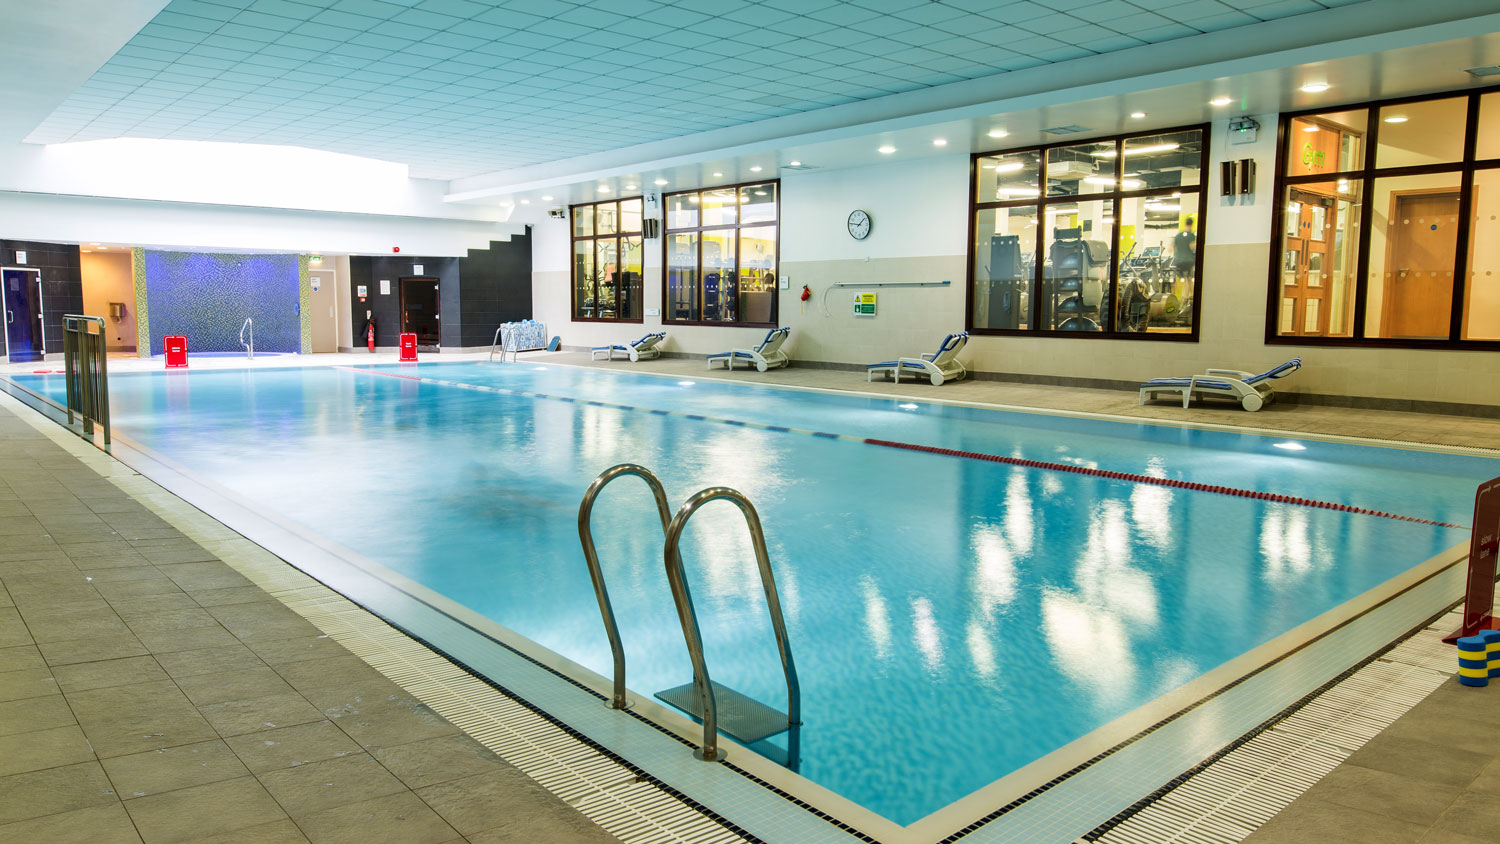 Gym in Islington, Fitness & Wellbeing | Nuffield Health